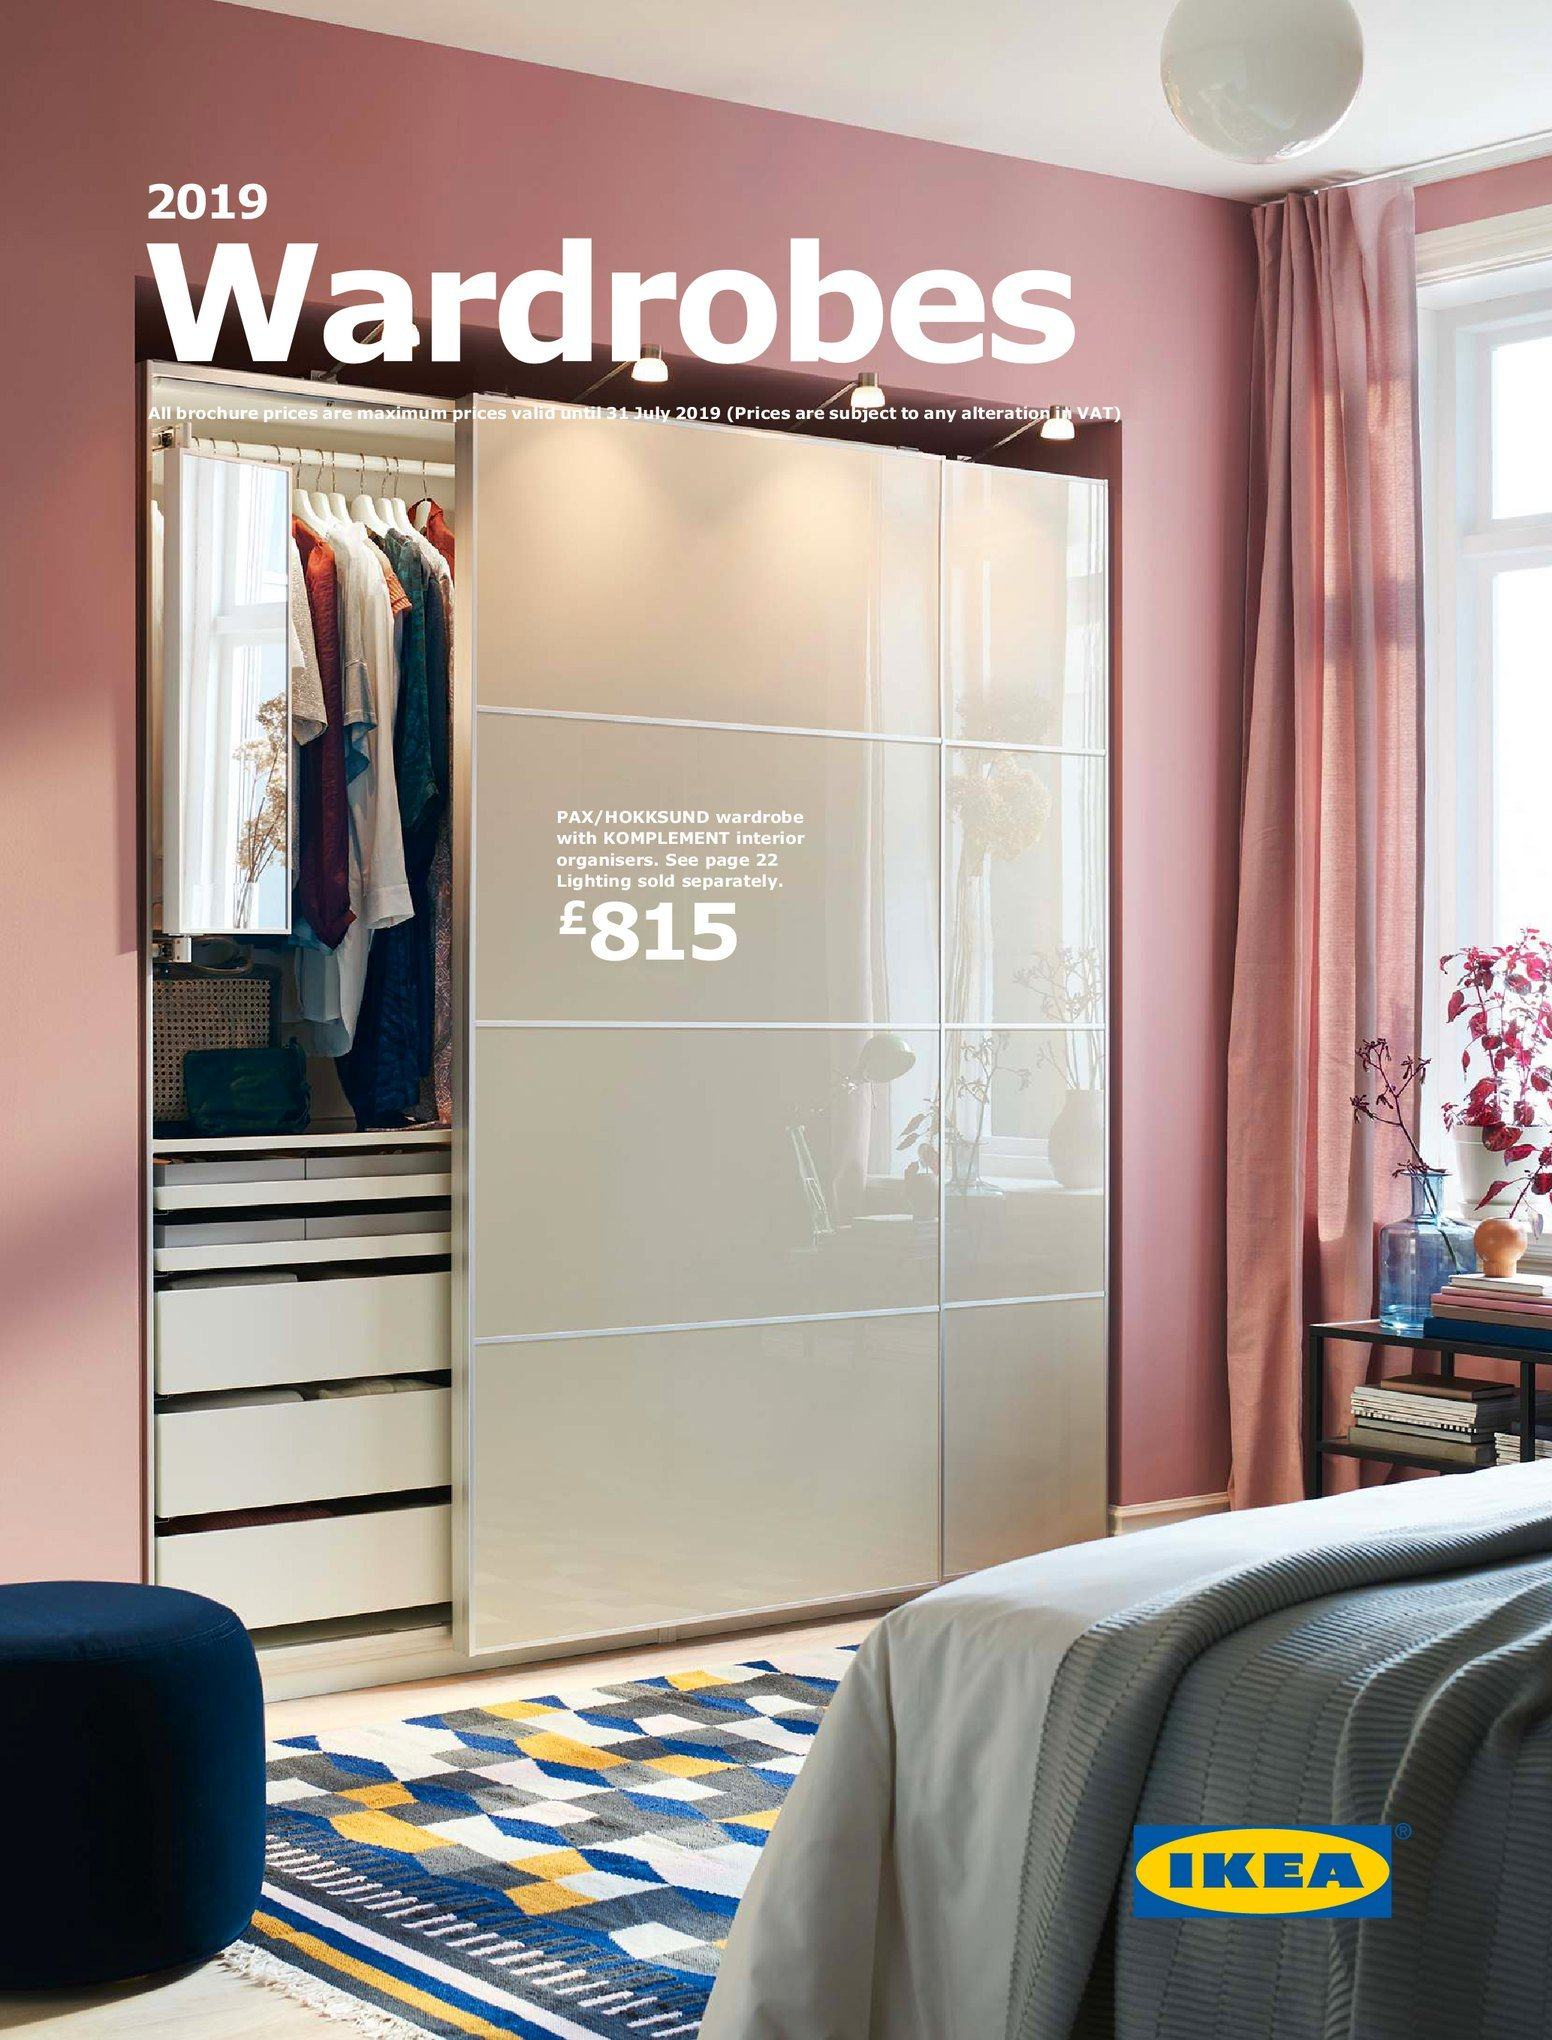 IKEA offer  - 14.10.2018 - 31.7.2019 - Sales products - wardrobe. Page 1.